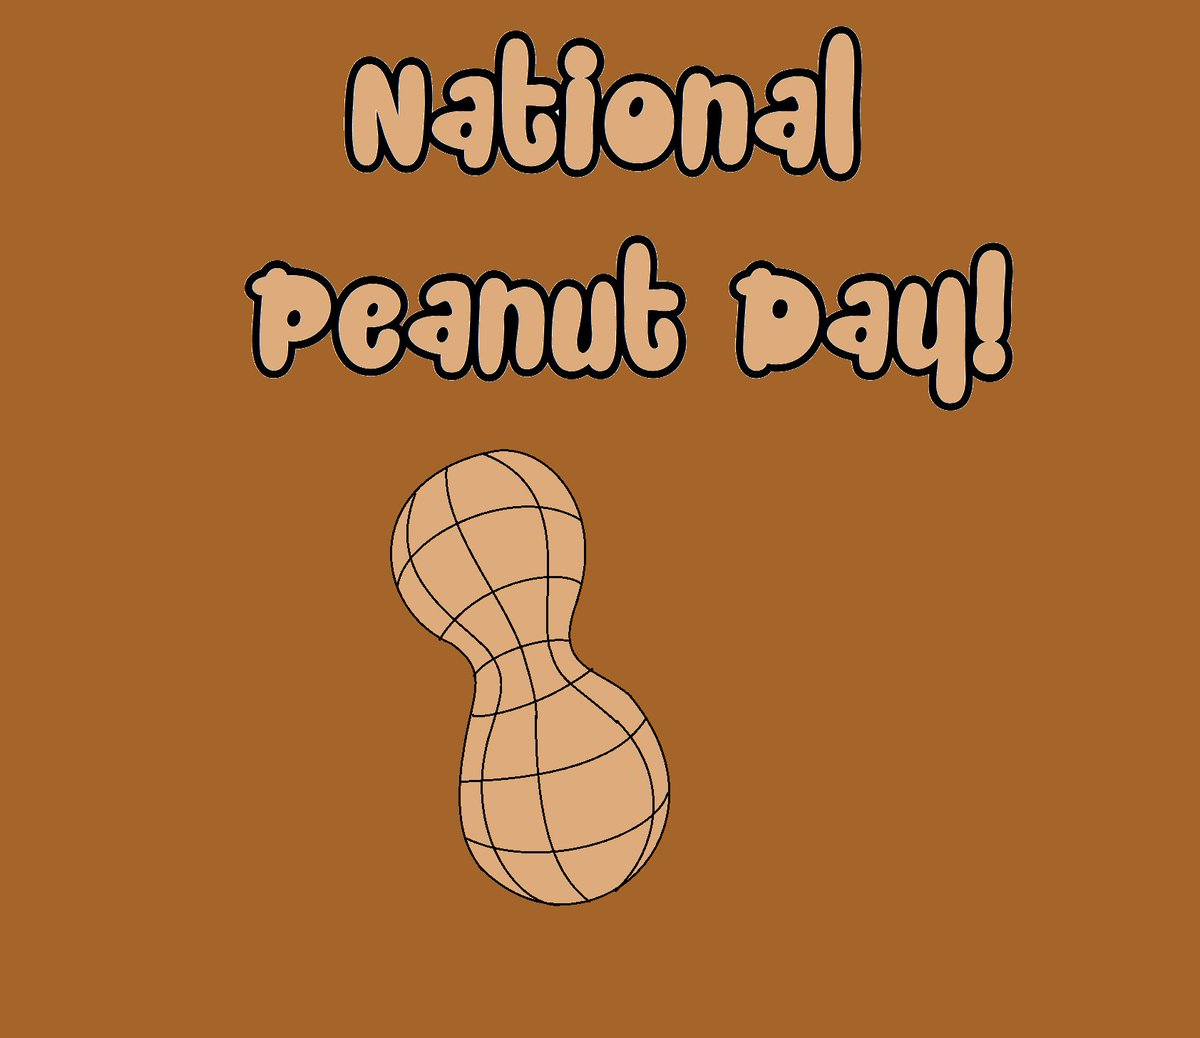 Happy National Peanut Day! #NationalPeanutDay #AmosAnimation #PeanutDay #Peanut #Legume https://t.co/gGFk8uj95s